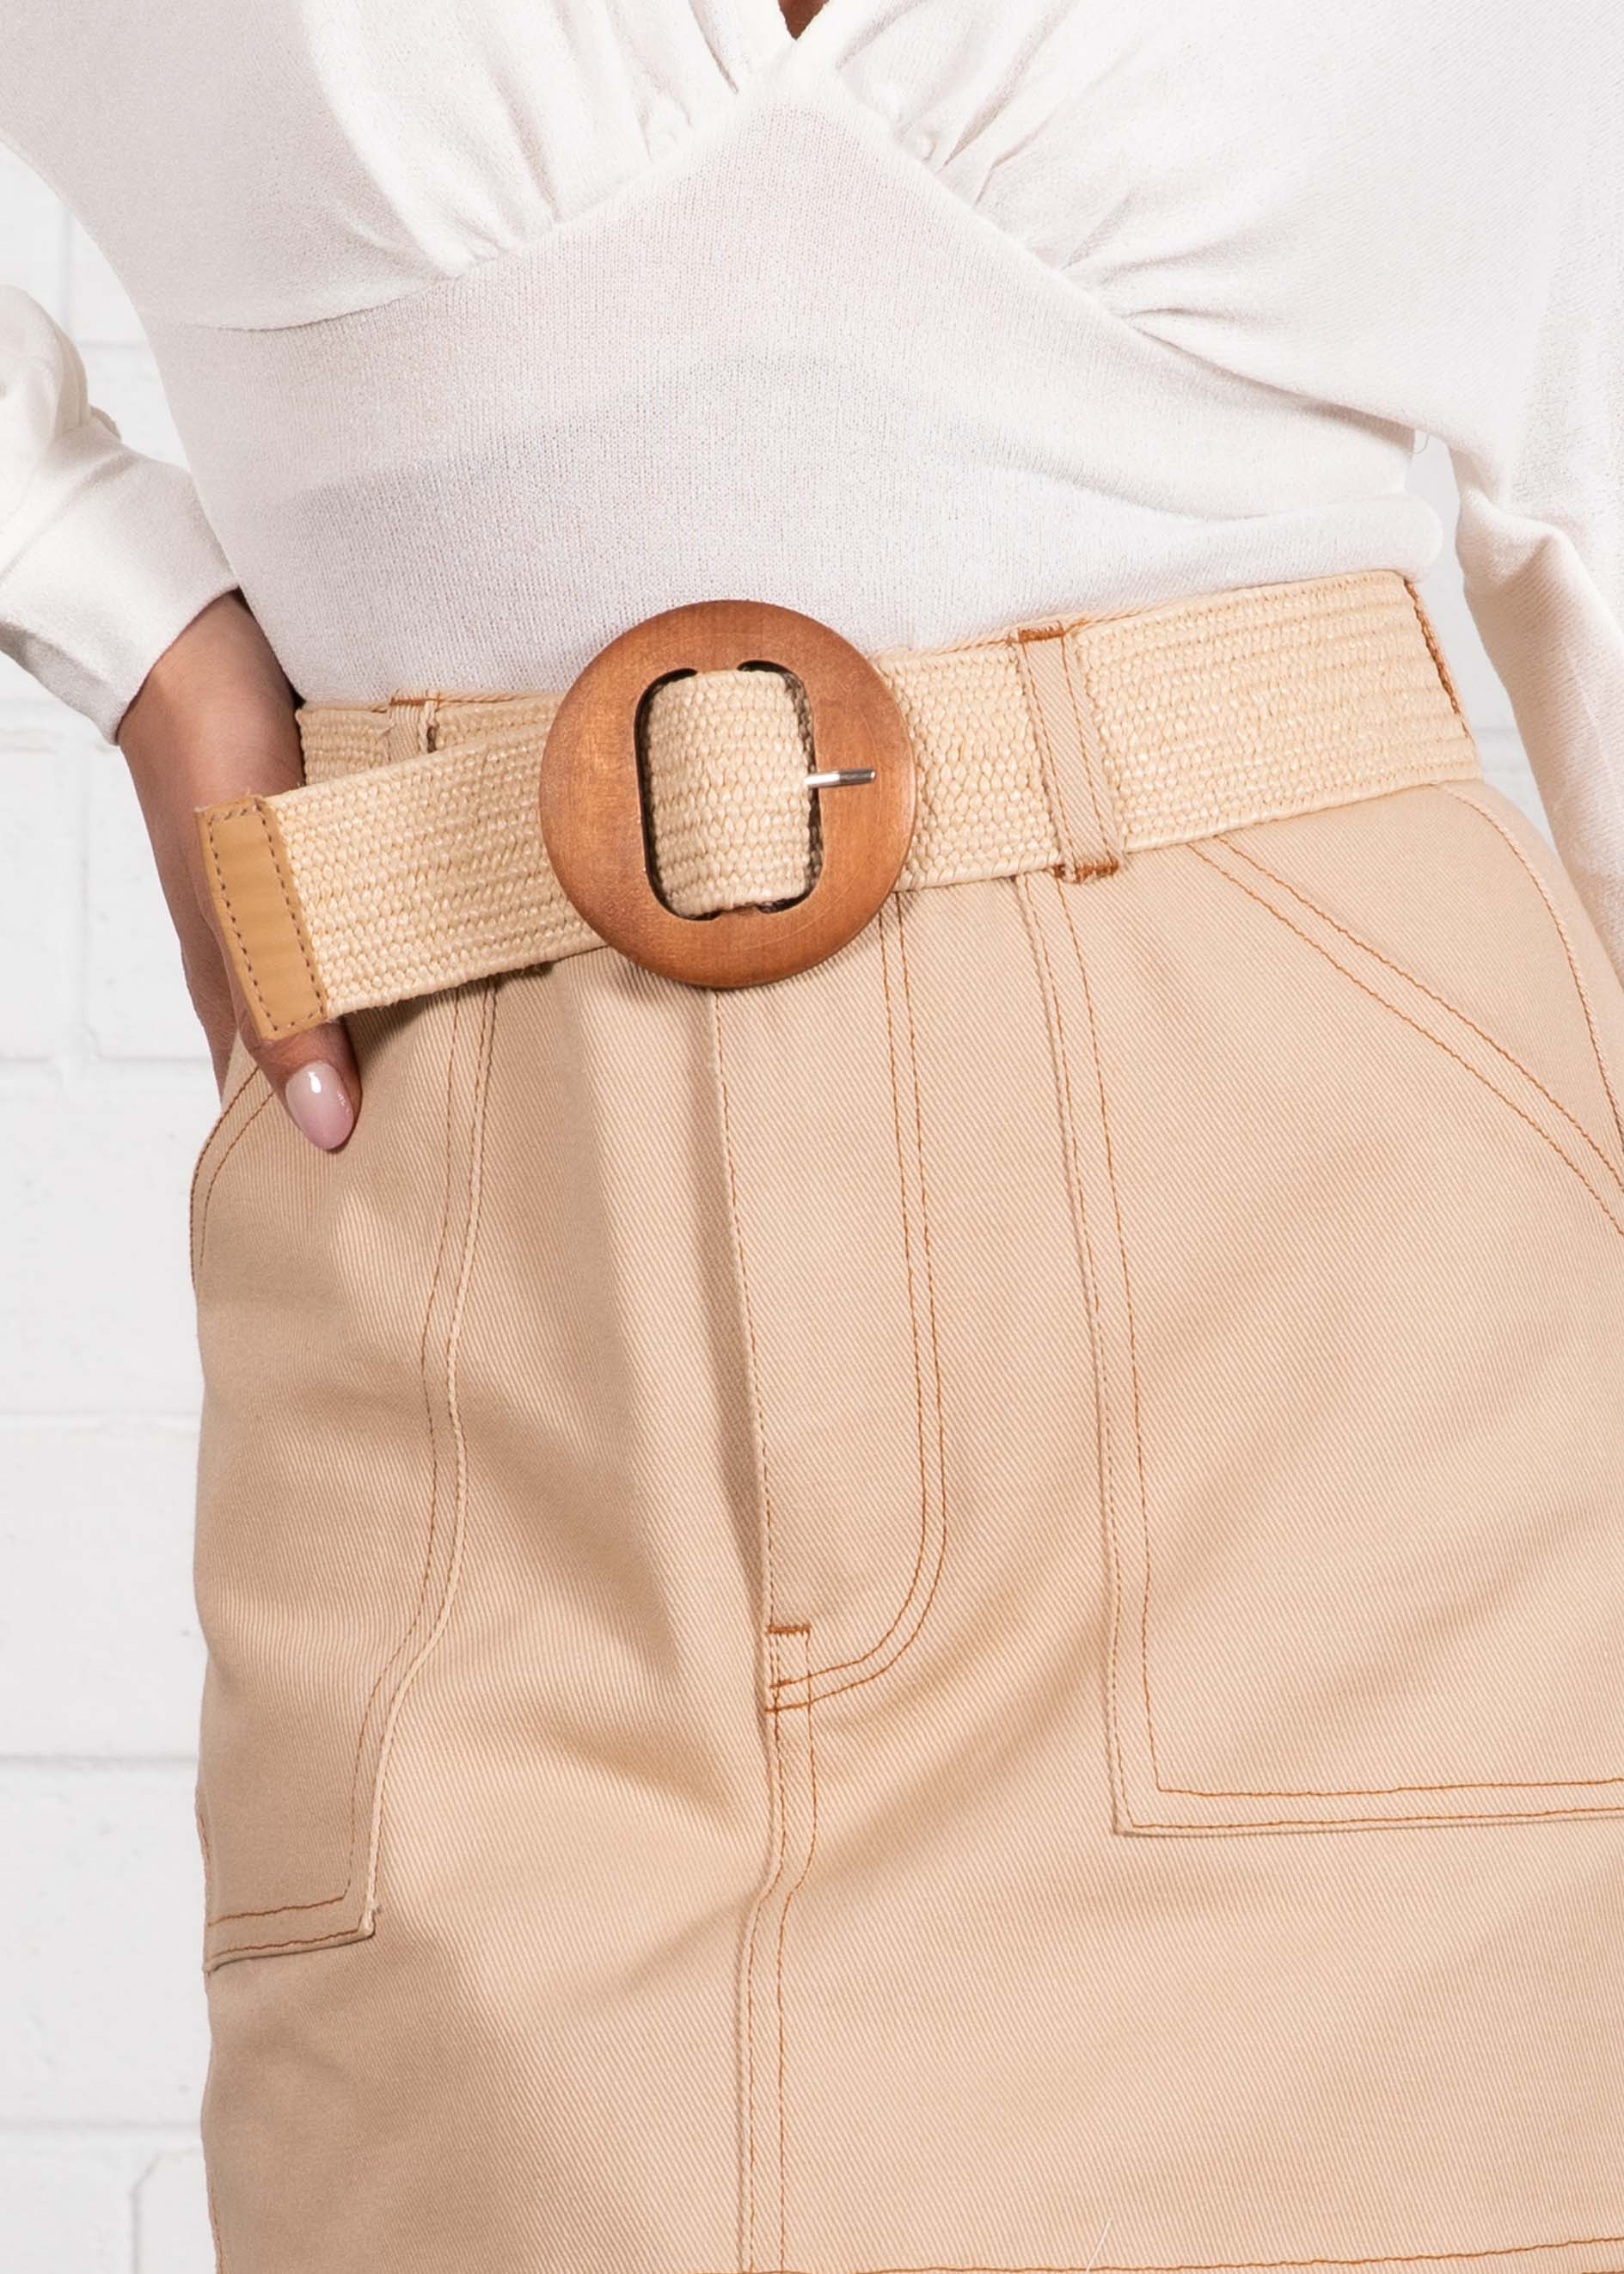 Lolea Belt - Cream